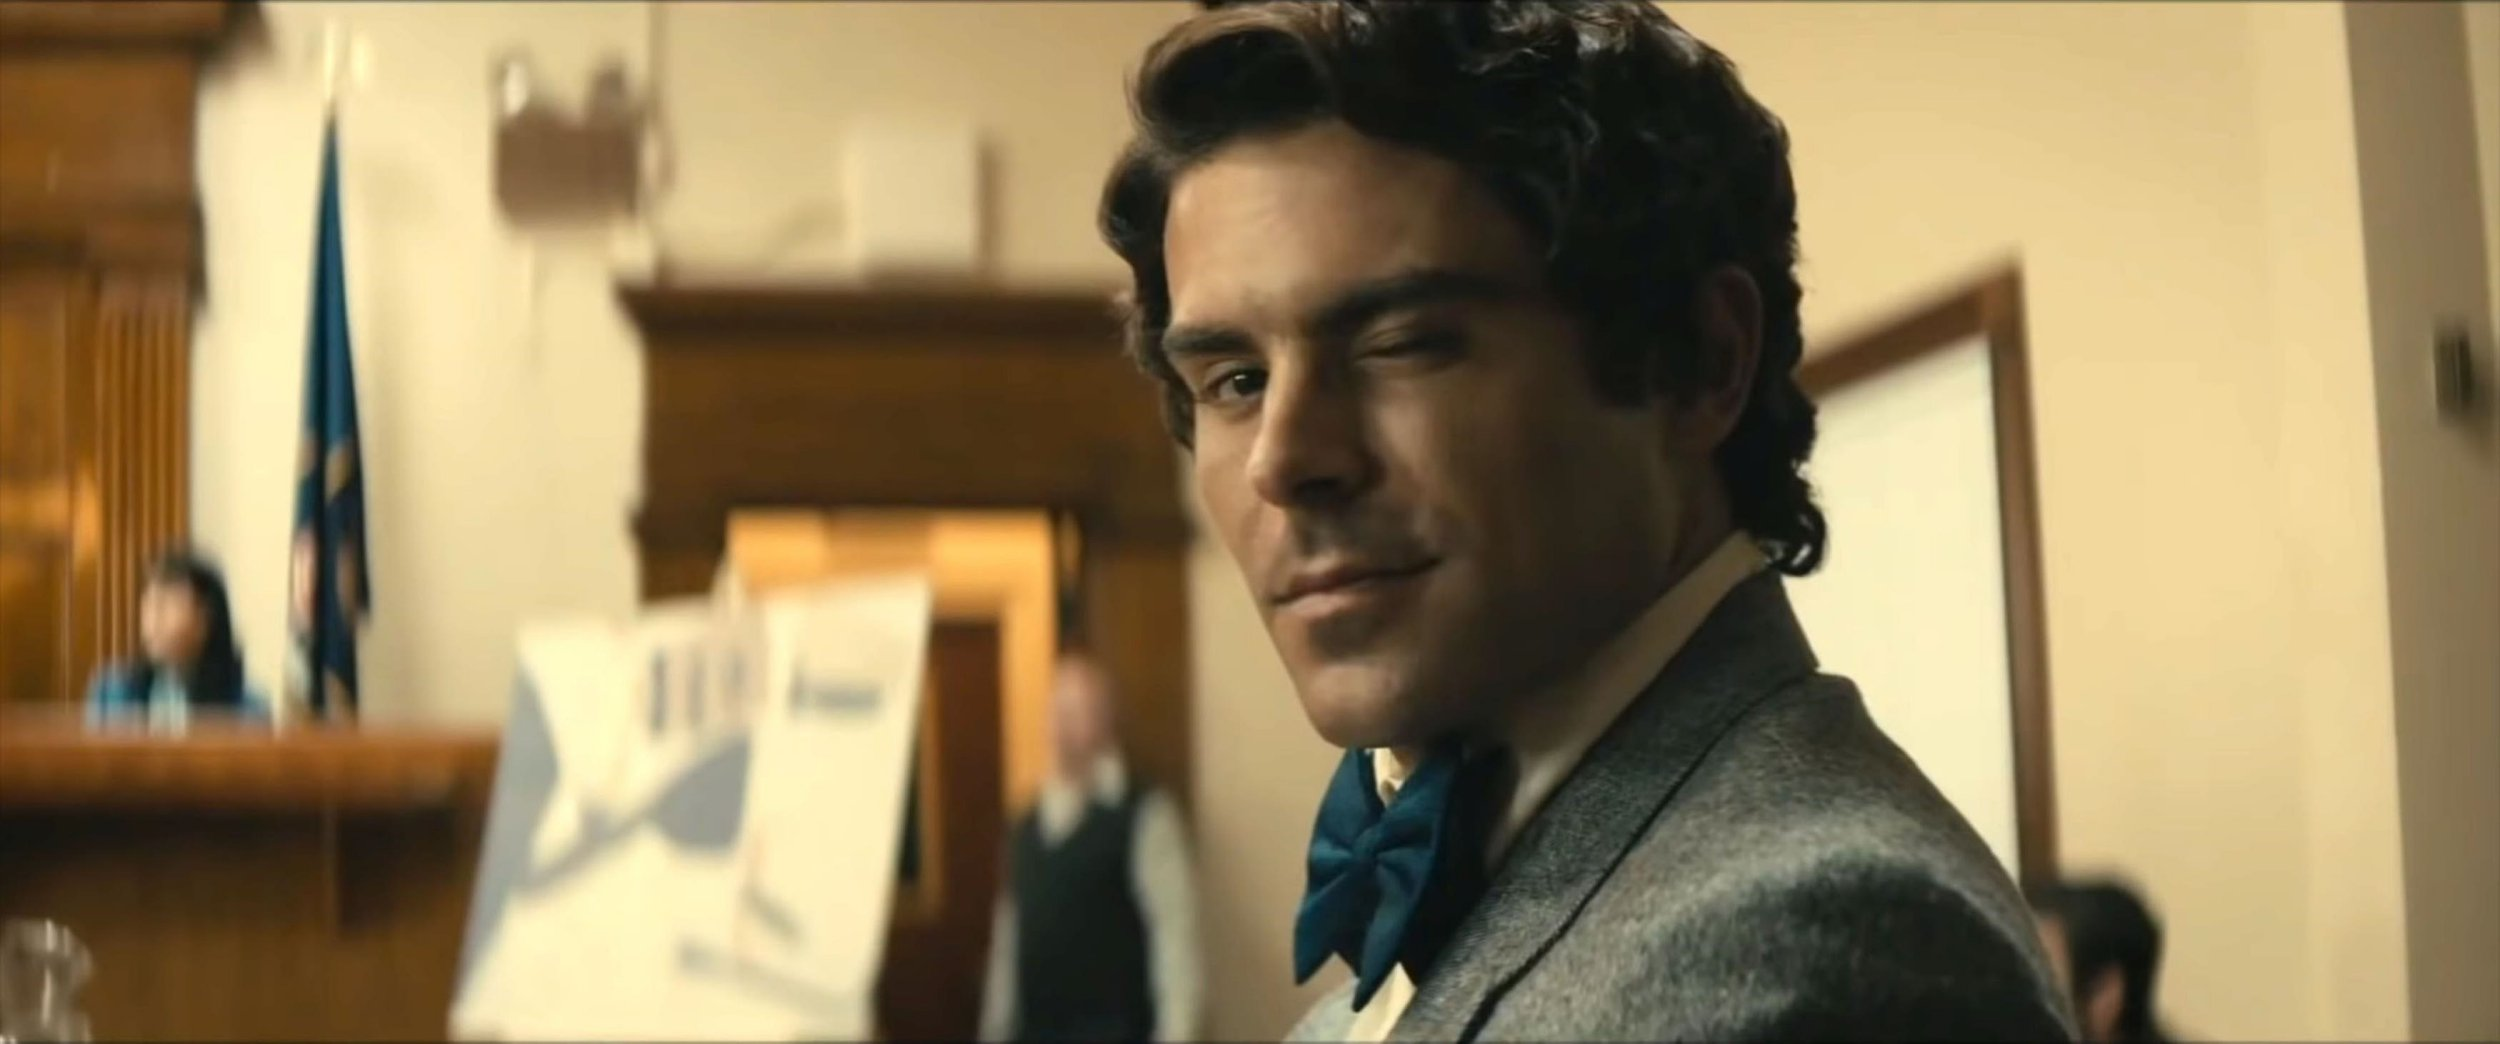 Extremely Wicked, Shockingly Evil and Vile starring Zac Efron as Ted Bundy